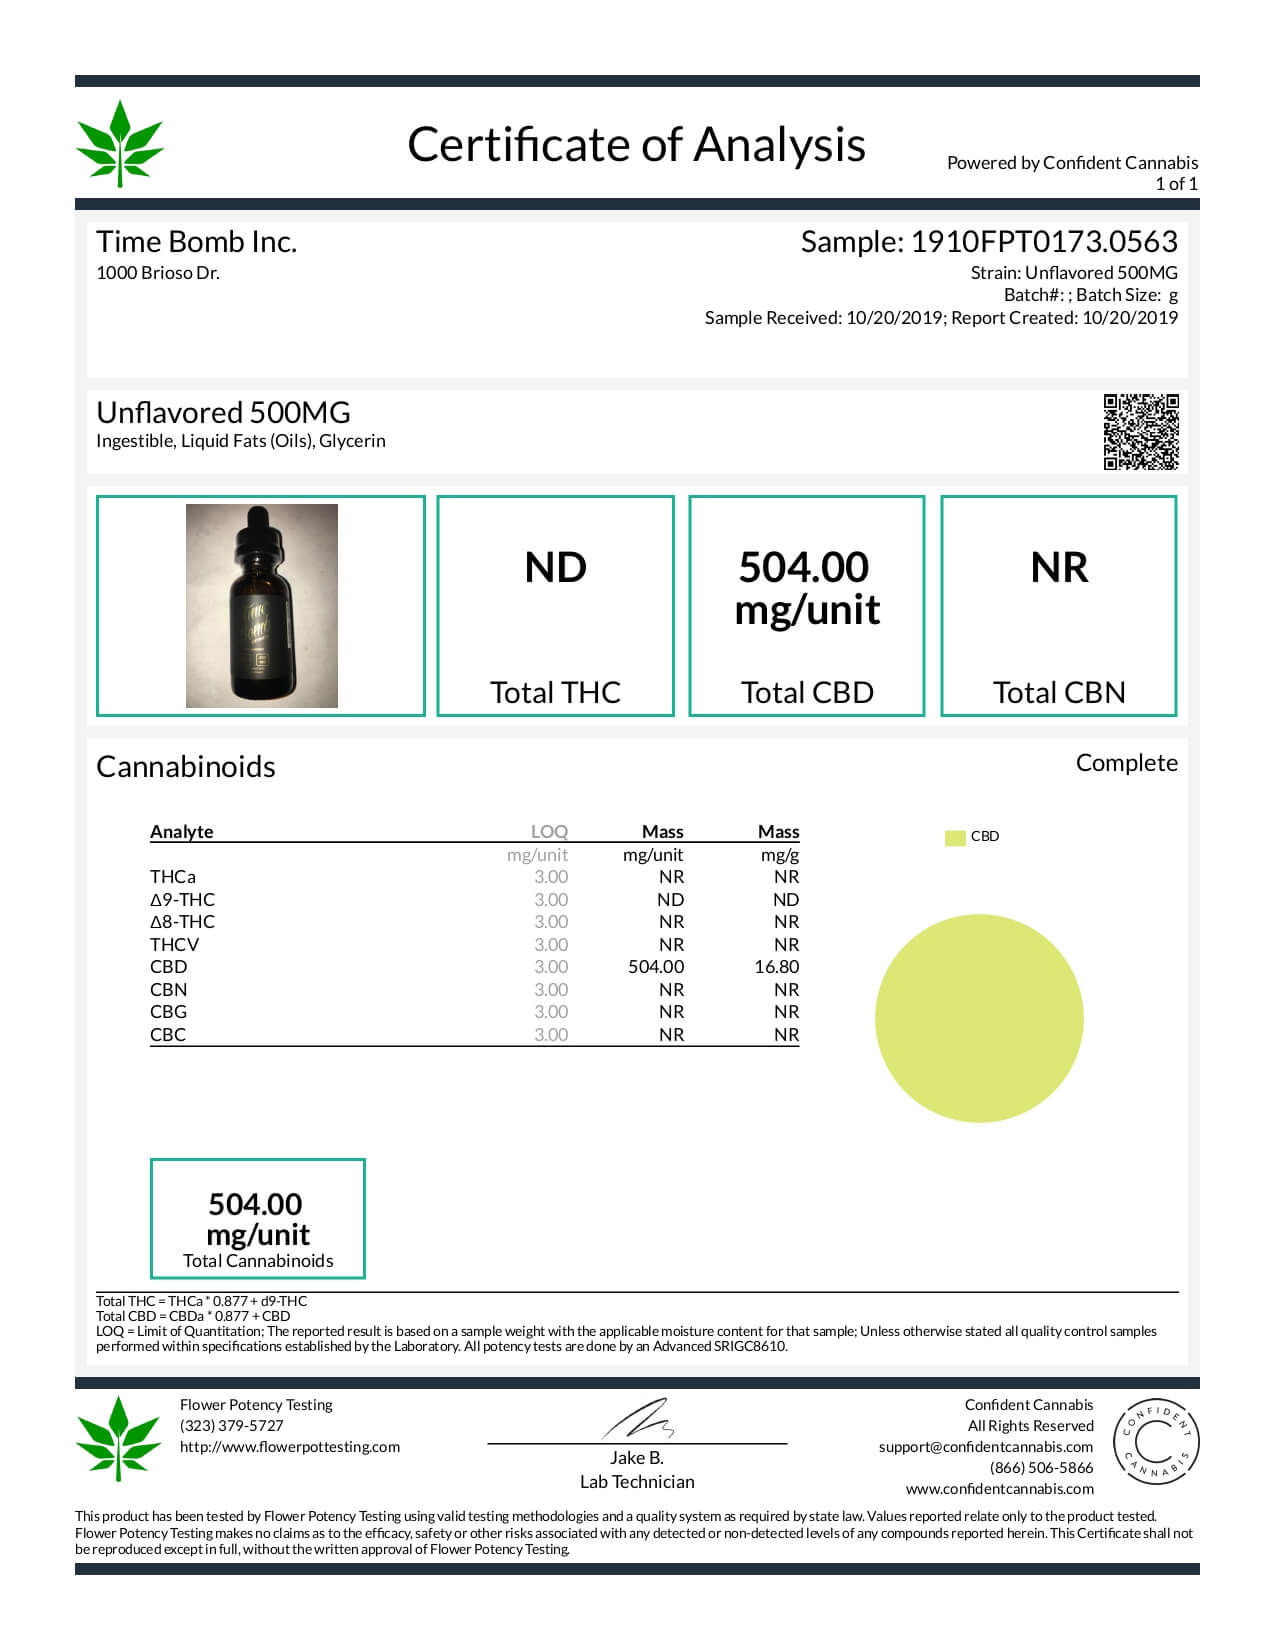 Time Bomb Extracts CBD Tincture Unflavored 500mg Lab Report